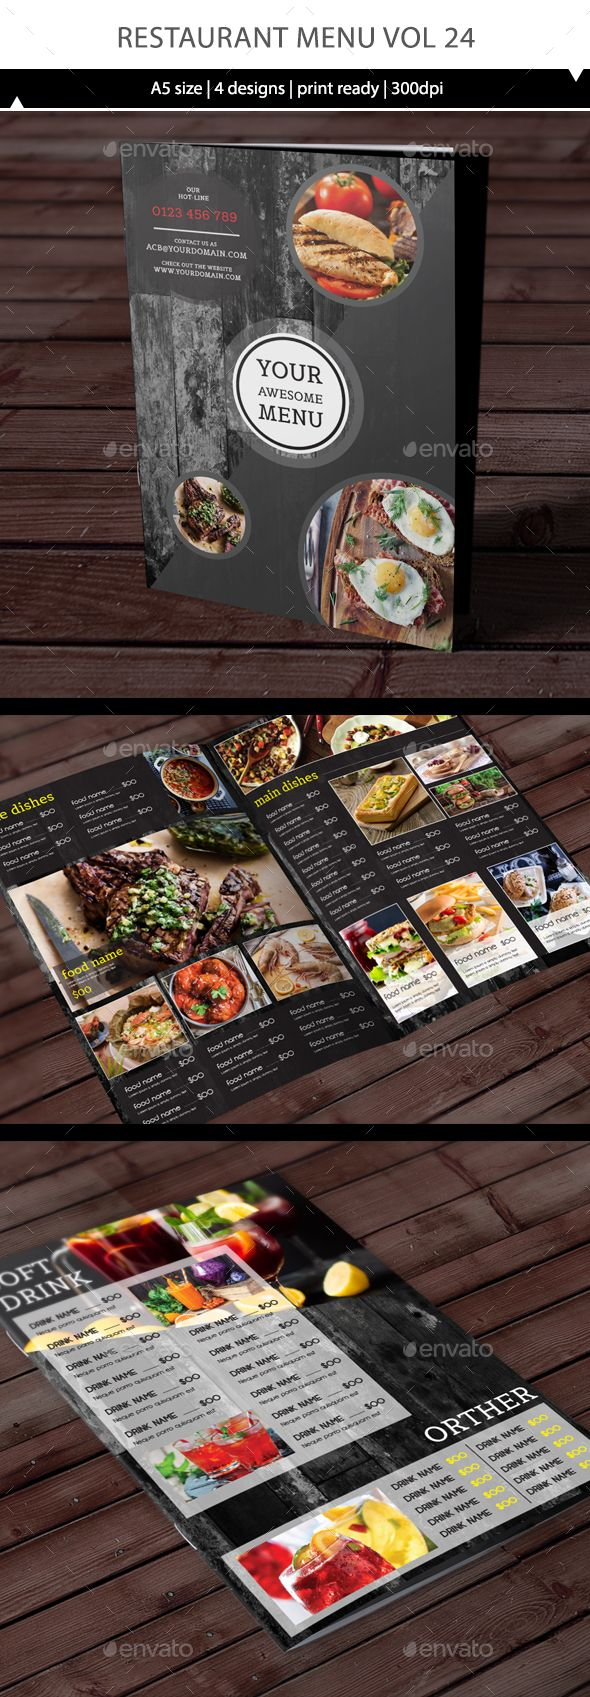 Restaurant Menu Design Template Vol 24 - Food Menus Print Template Vector EPS, AI Illustrator. Download here: https://graphicriver.net/item/restaurant-menu-vol-24/17421827?ref=yinkira